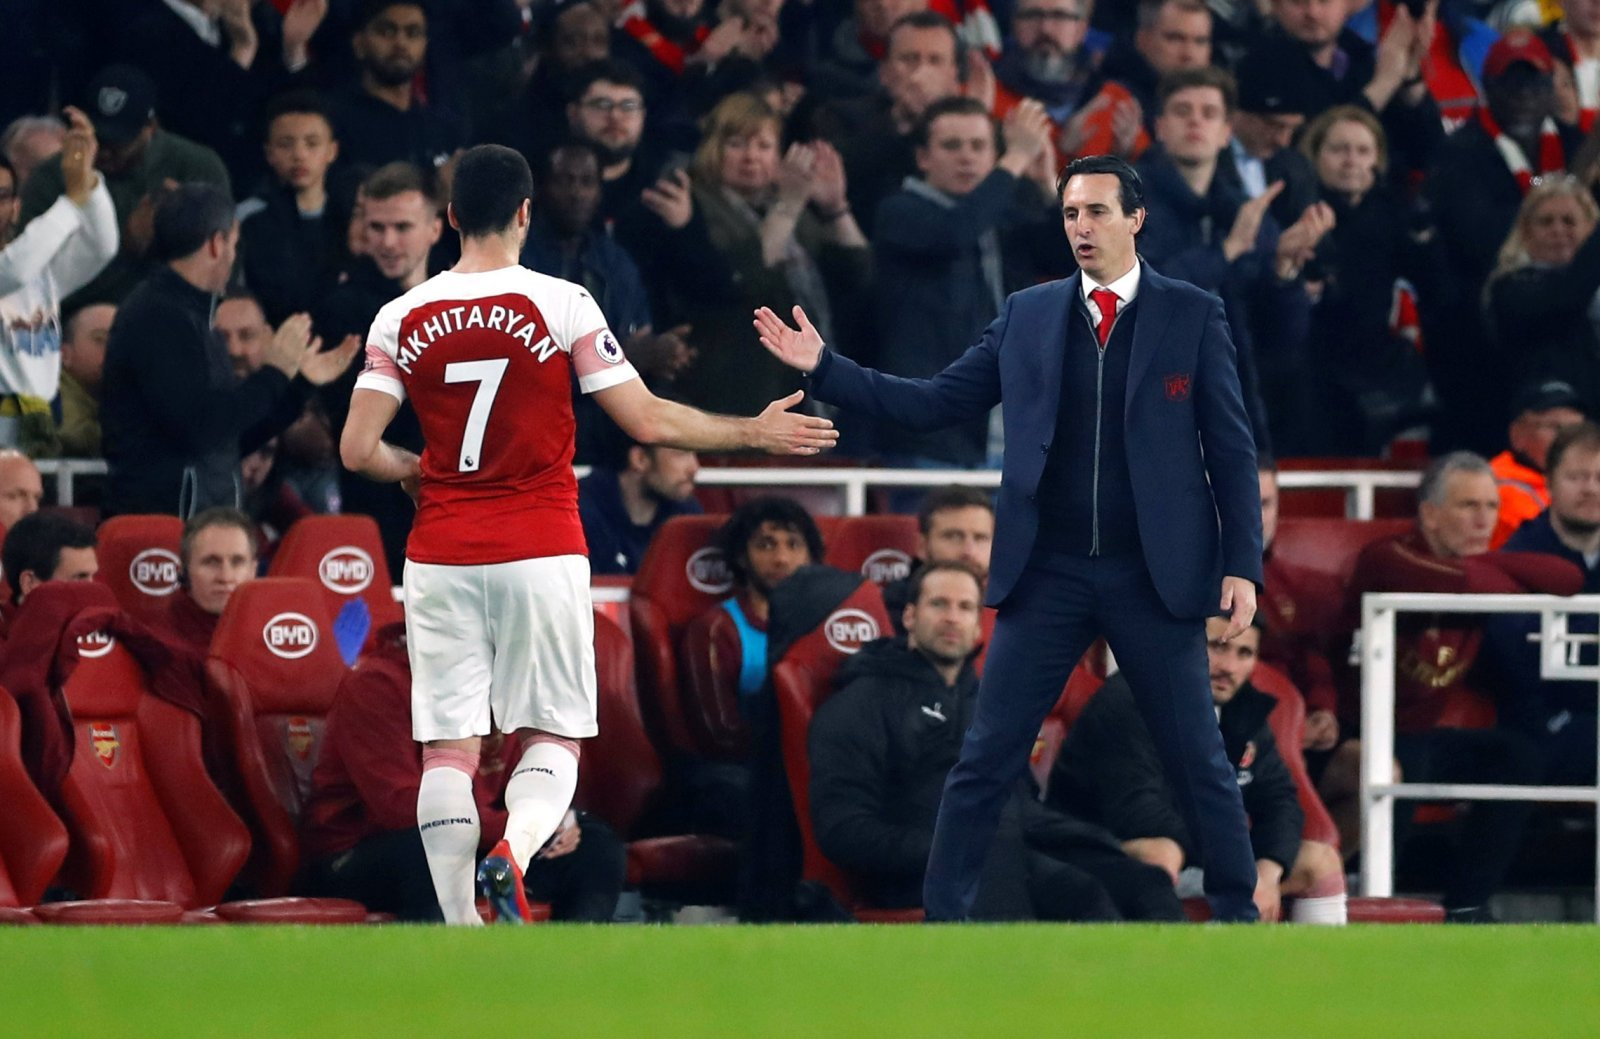 Henrikh Mkhitaryan proving himself as Arsenal's best creative force